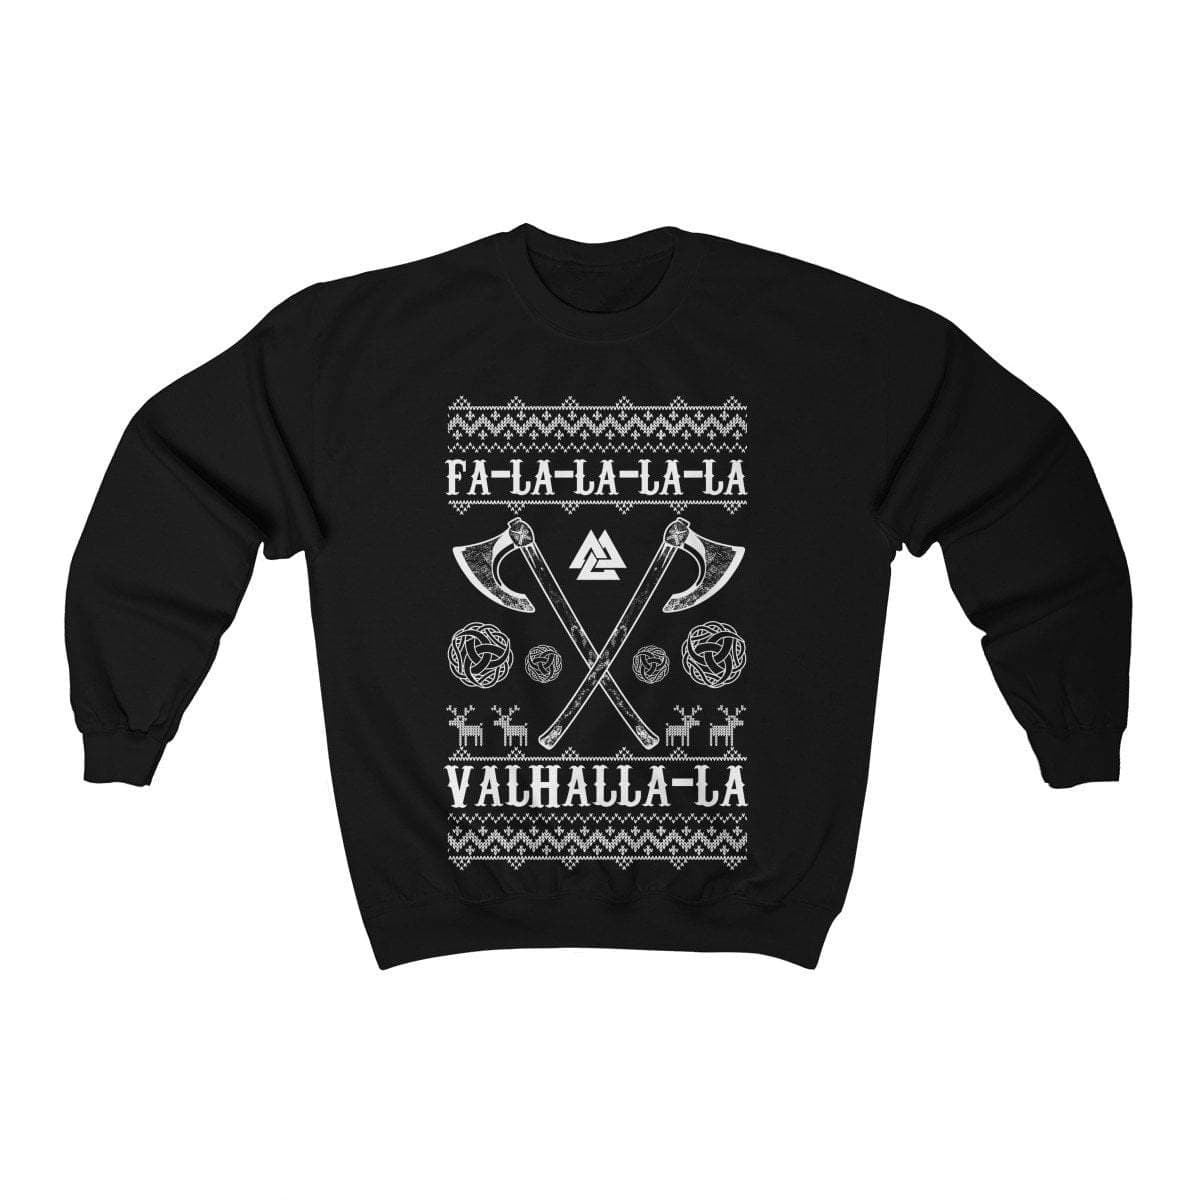 Unisex Axes Fa-La-La Valhalla Christmas Holiday Sweater